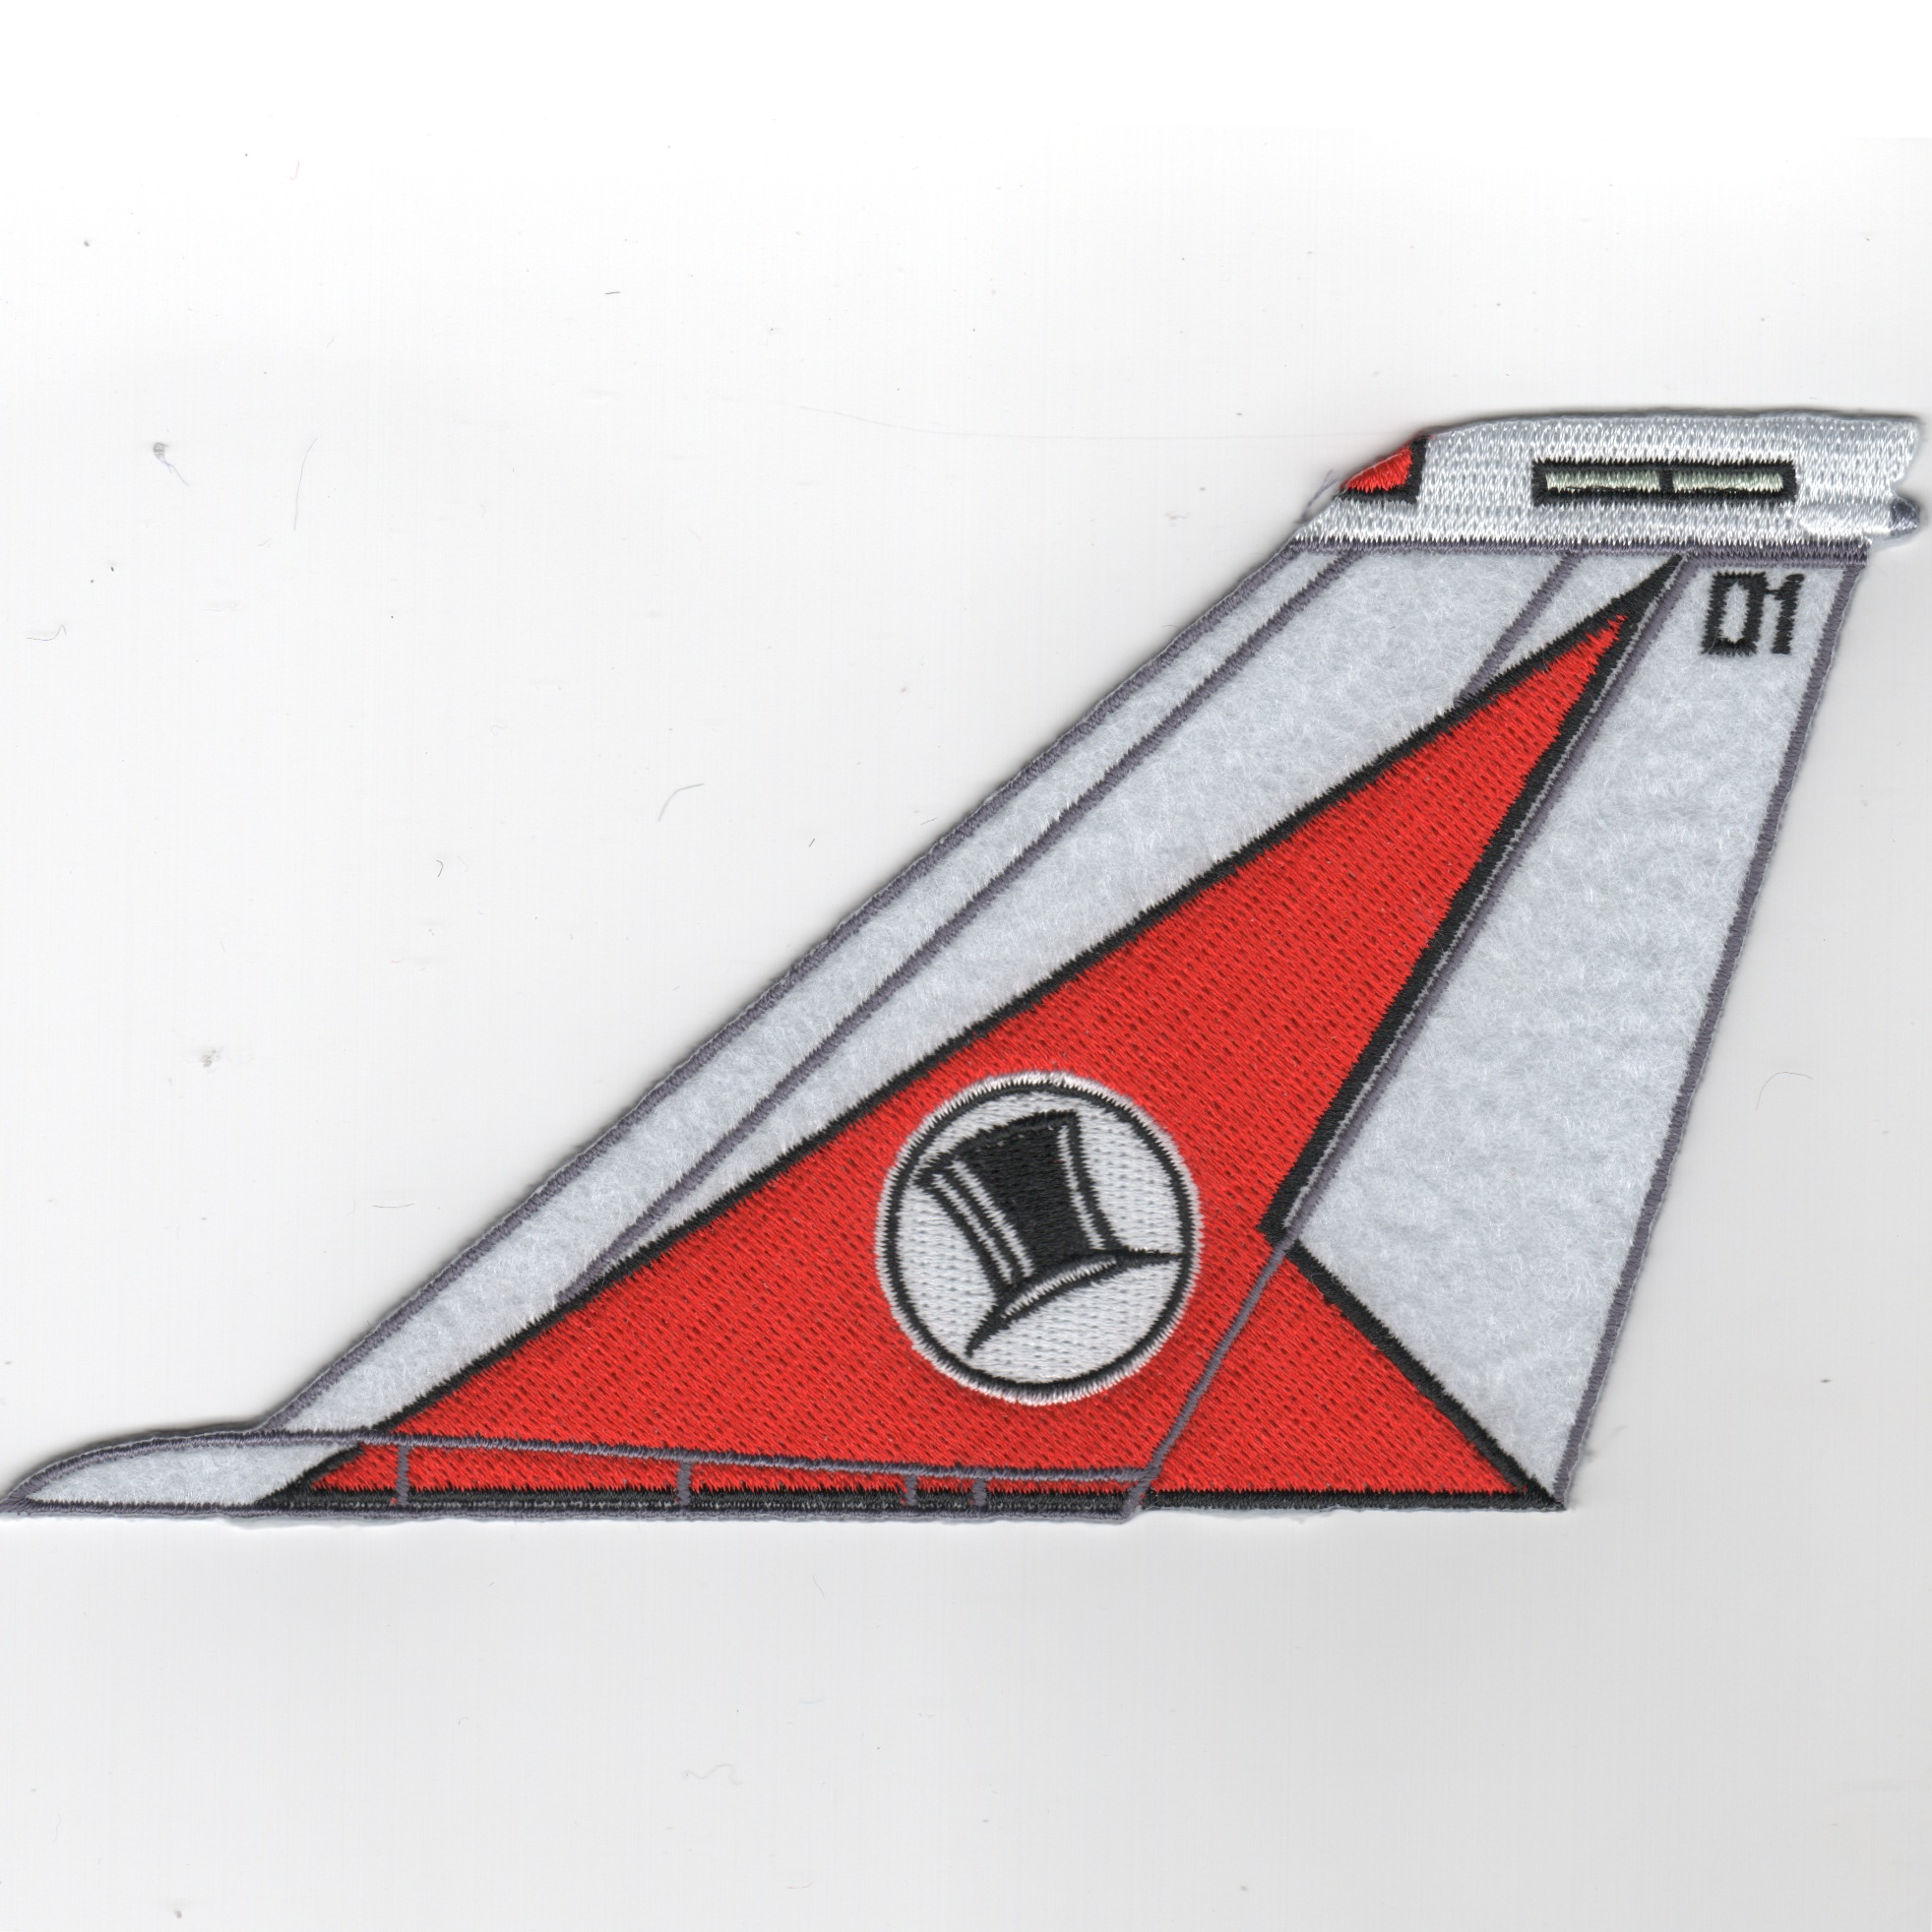 VF-14 F-14 Tomcat Tail Fin (Red/White/No Text)